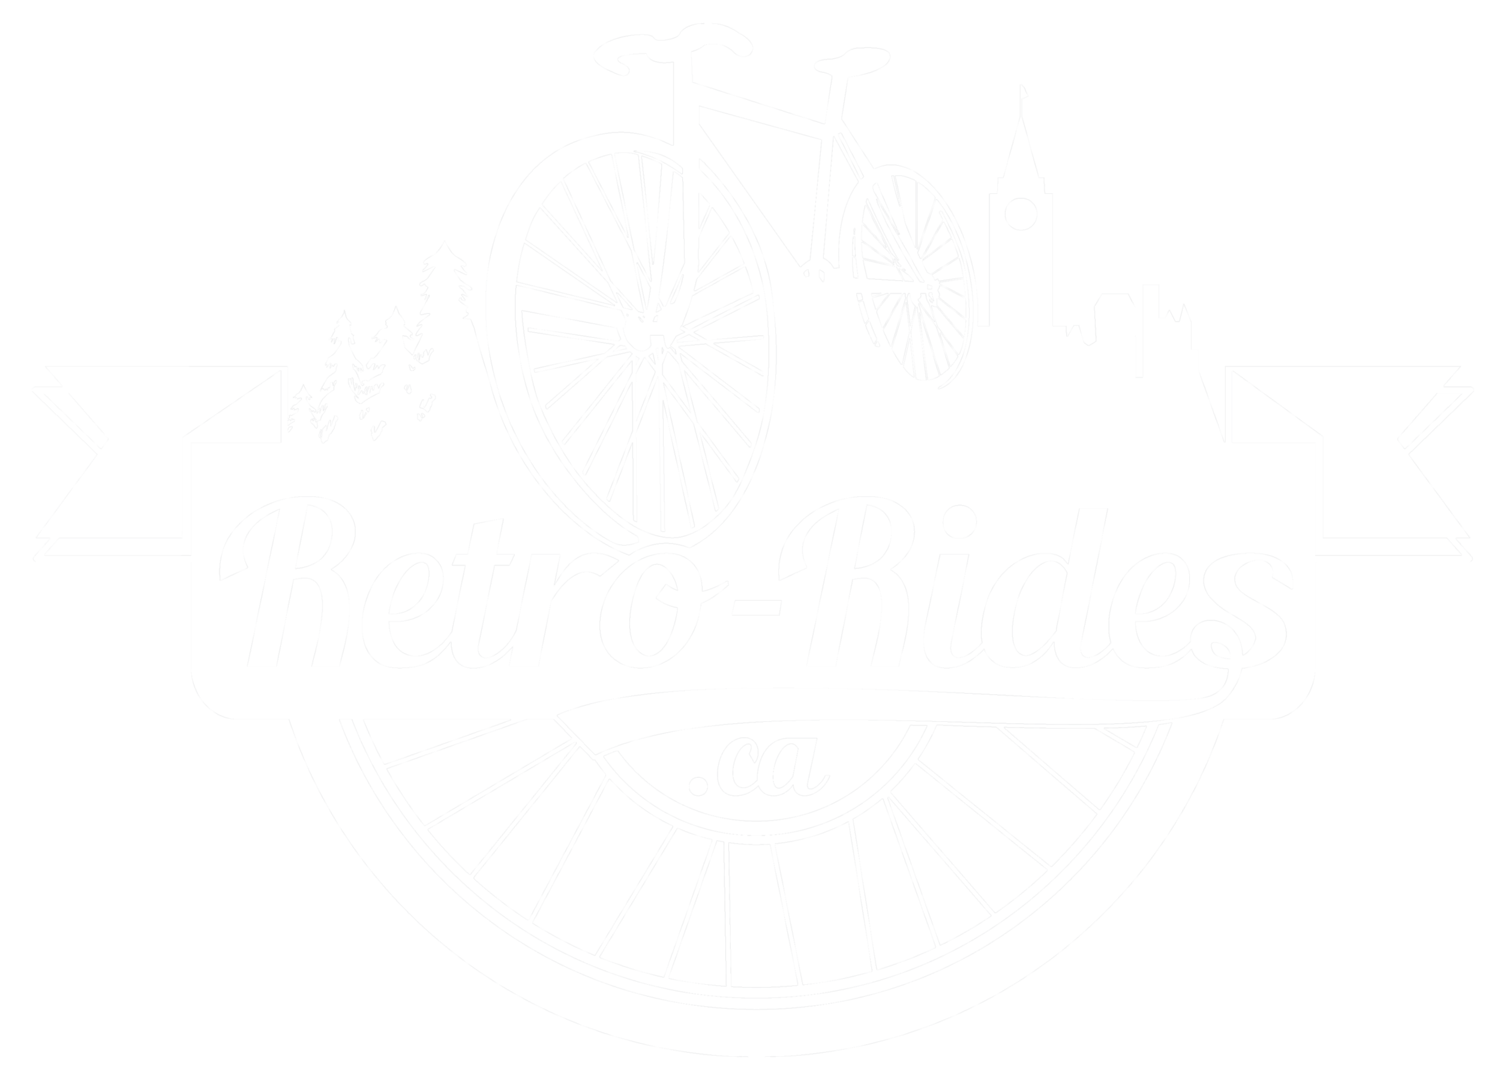 Retro-Rides.ca, Vintage Bike Shop, Bike Repairs, Ottawa